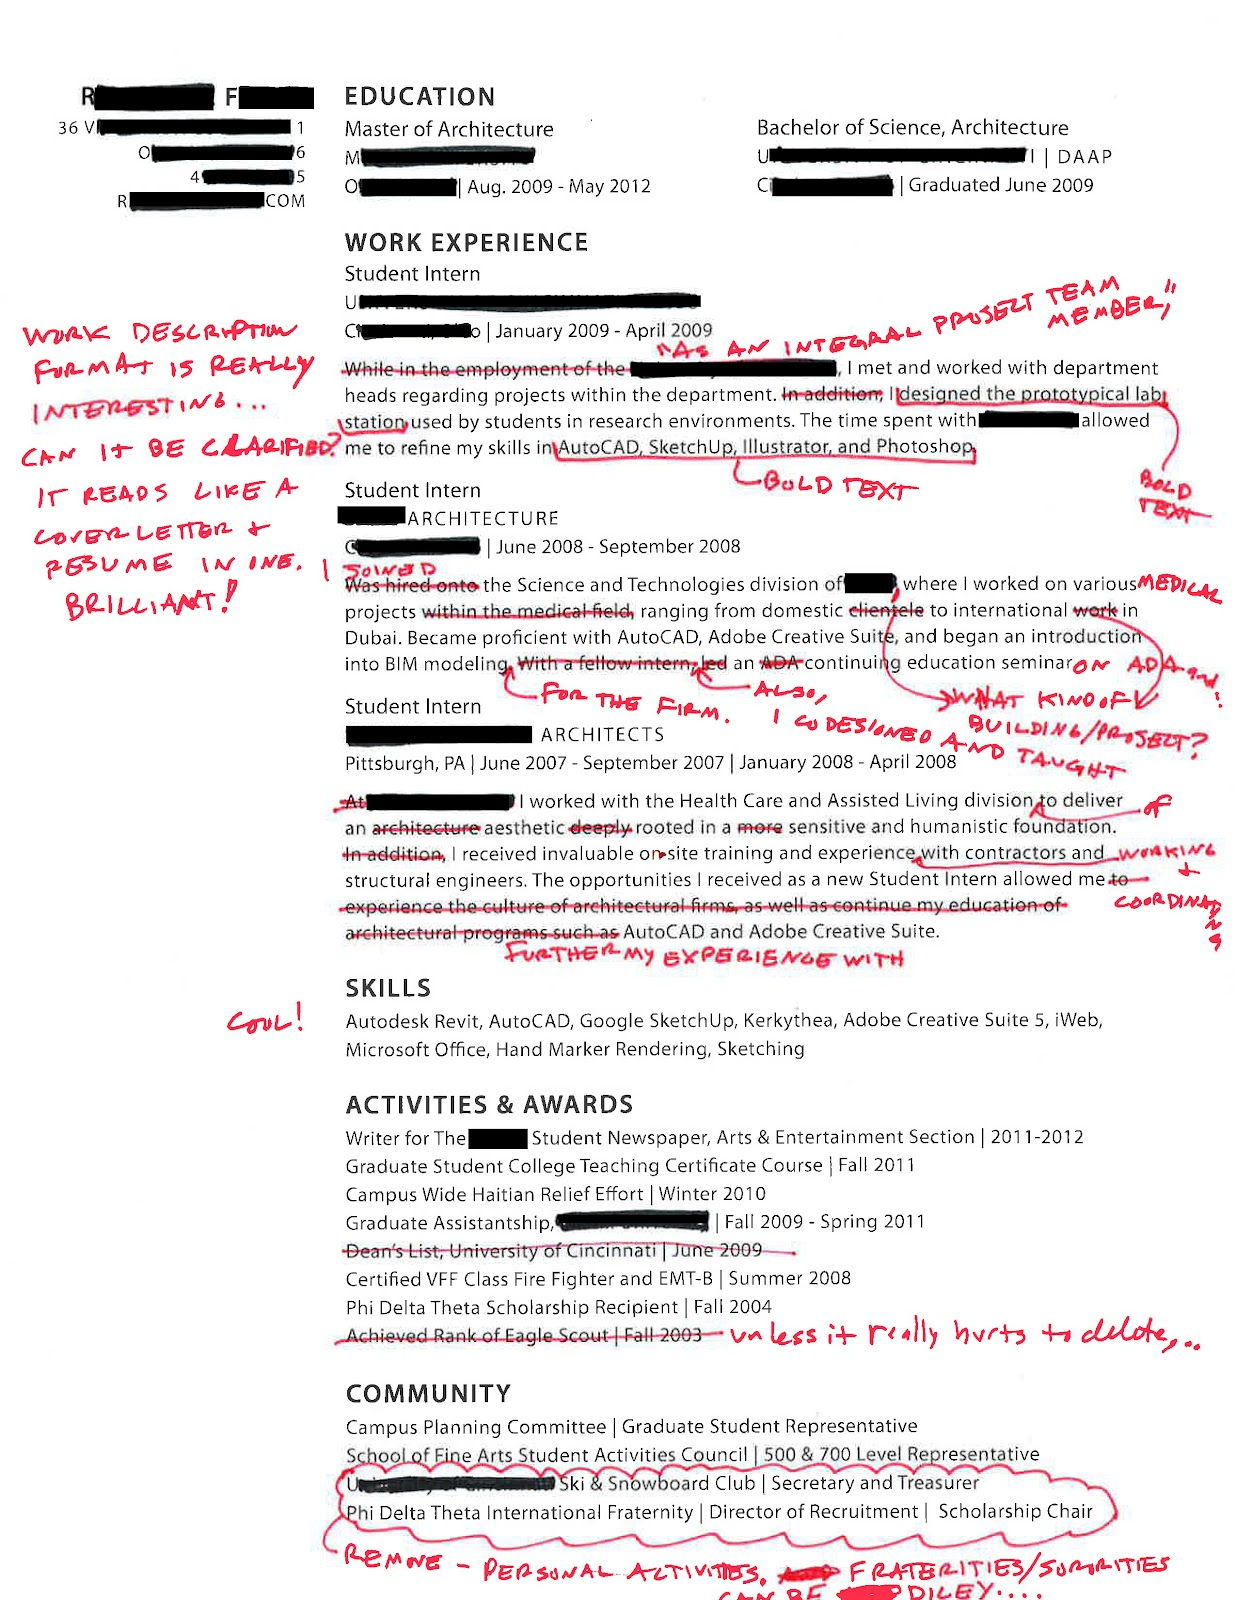 Intern 101: Redlined Resumes: The Importance Of Narrative, And The  Importance Of Reflection  Fraternity On Resume